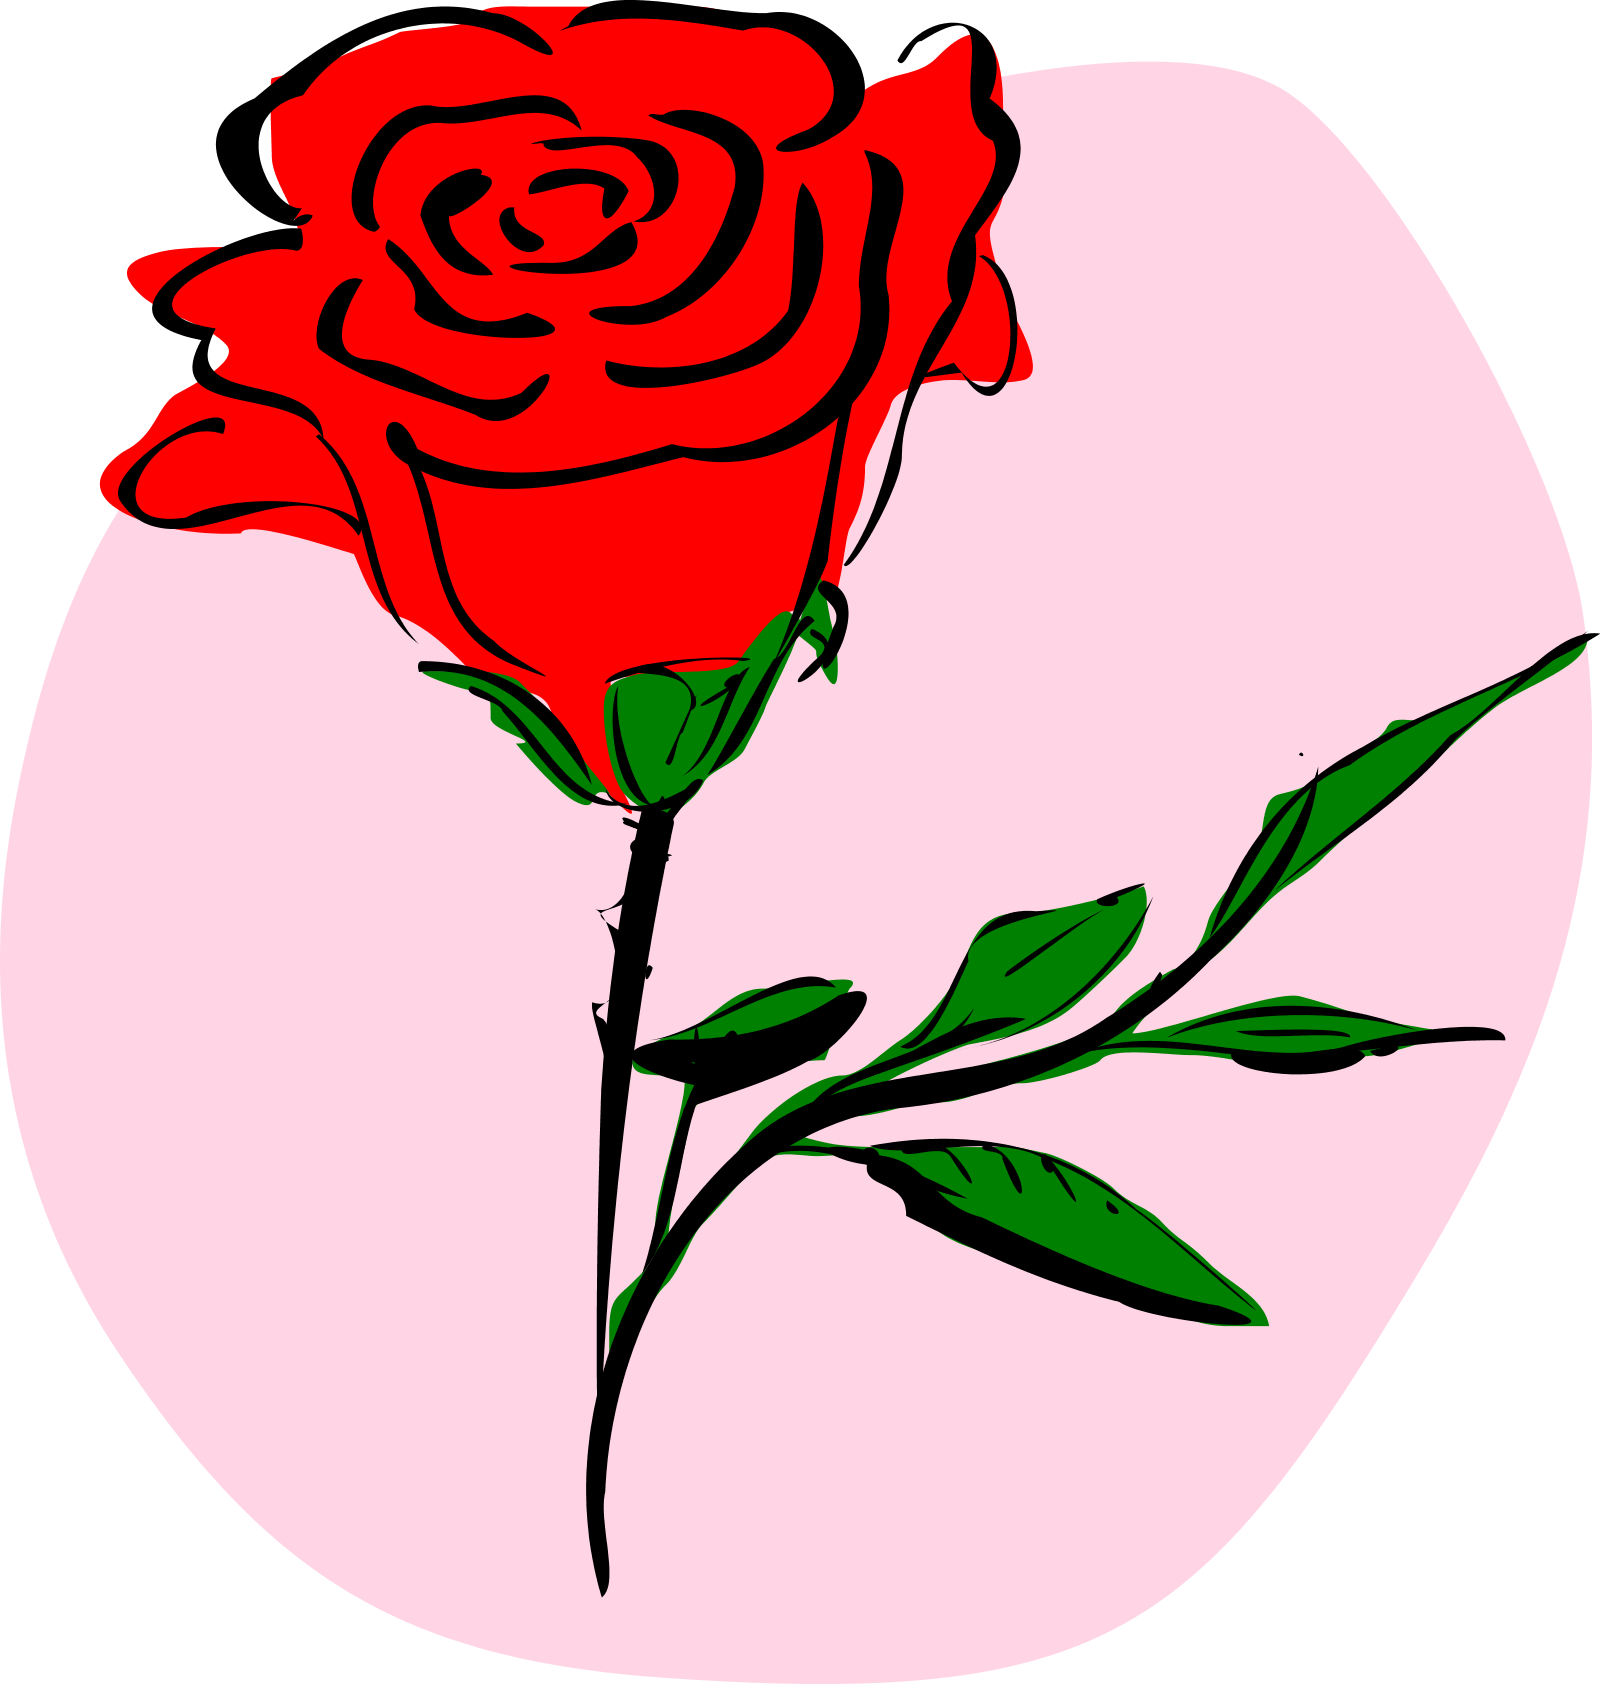 Clipart rose dead rose. Icon love is in